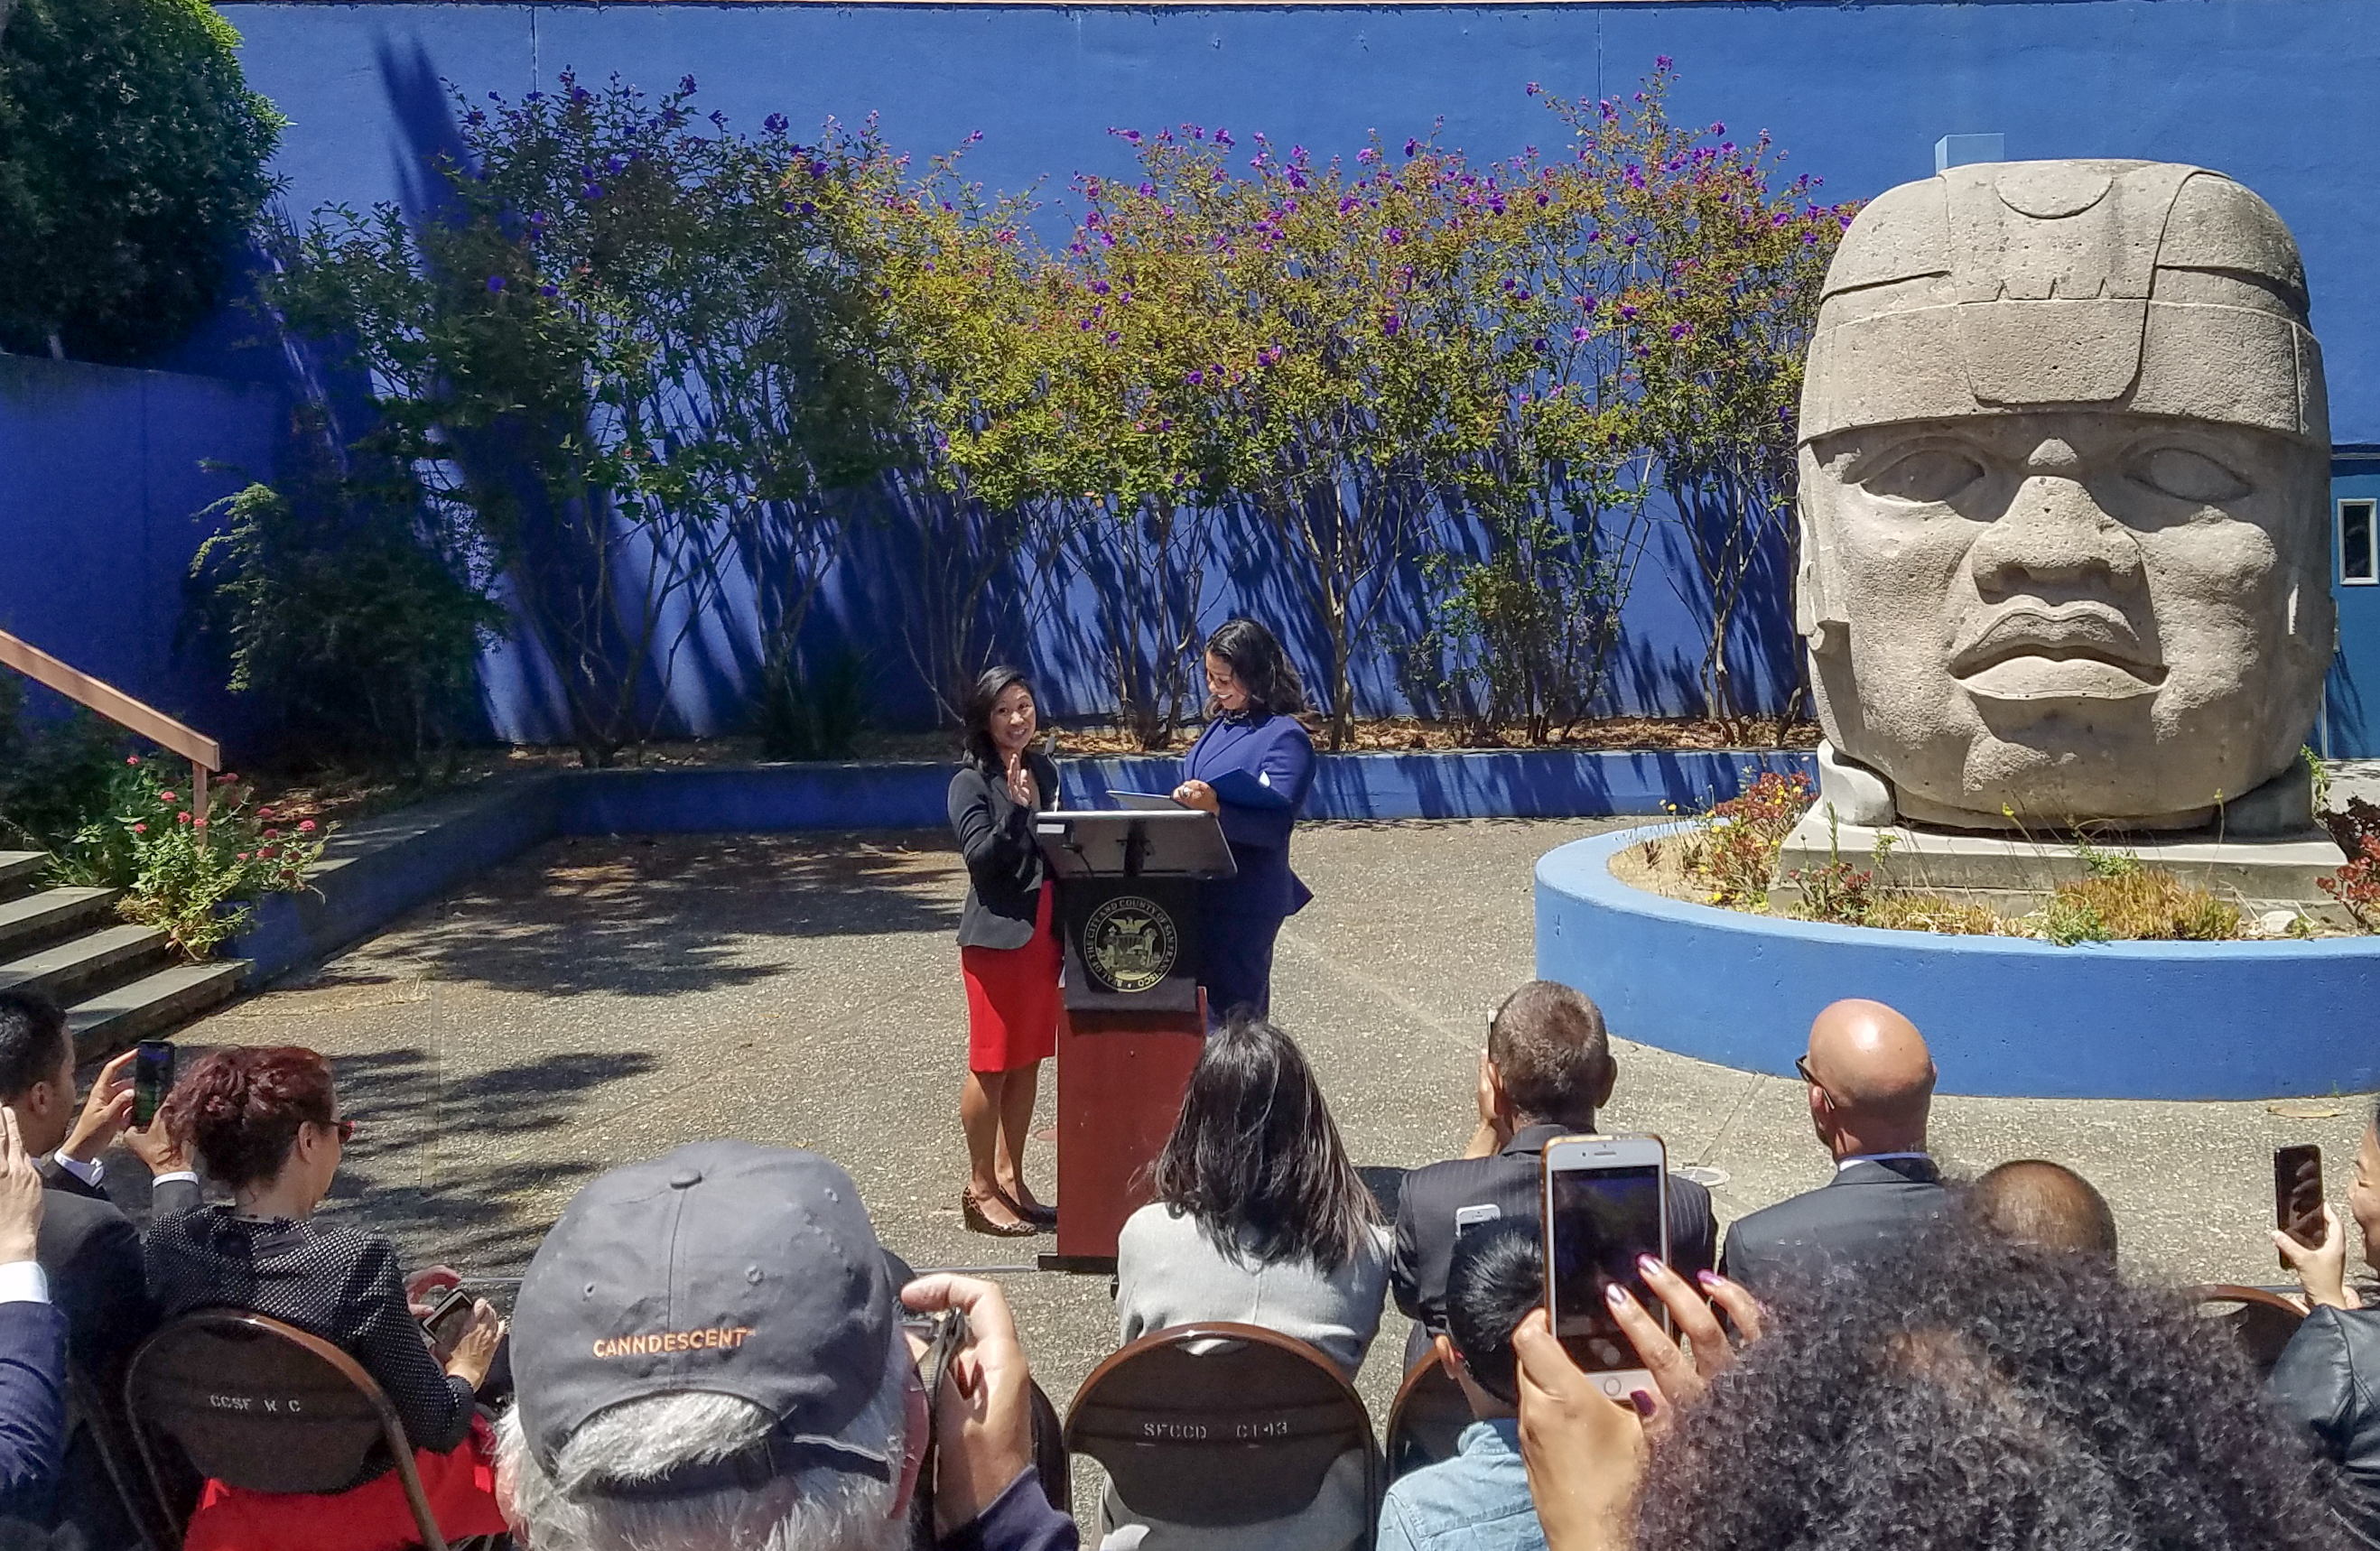 Mayor London Breed appoints Ivy Lee, previously the chief of staff and a legislative aide to District 6 Supervisor Jane Kim, to City College's Board of Trustees on July 20 in Diego Rivera Theatre's courtyard. (David Mamaril Horowitz / The Guardsman)